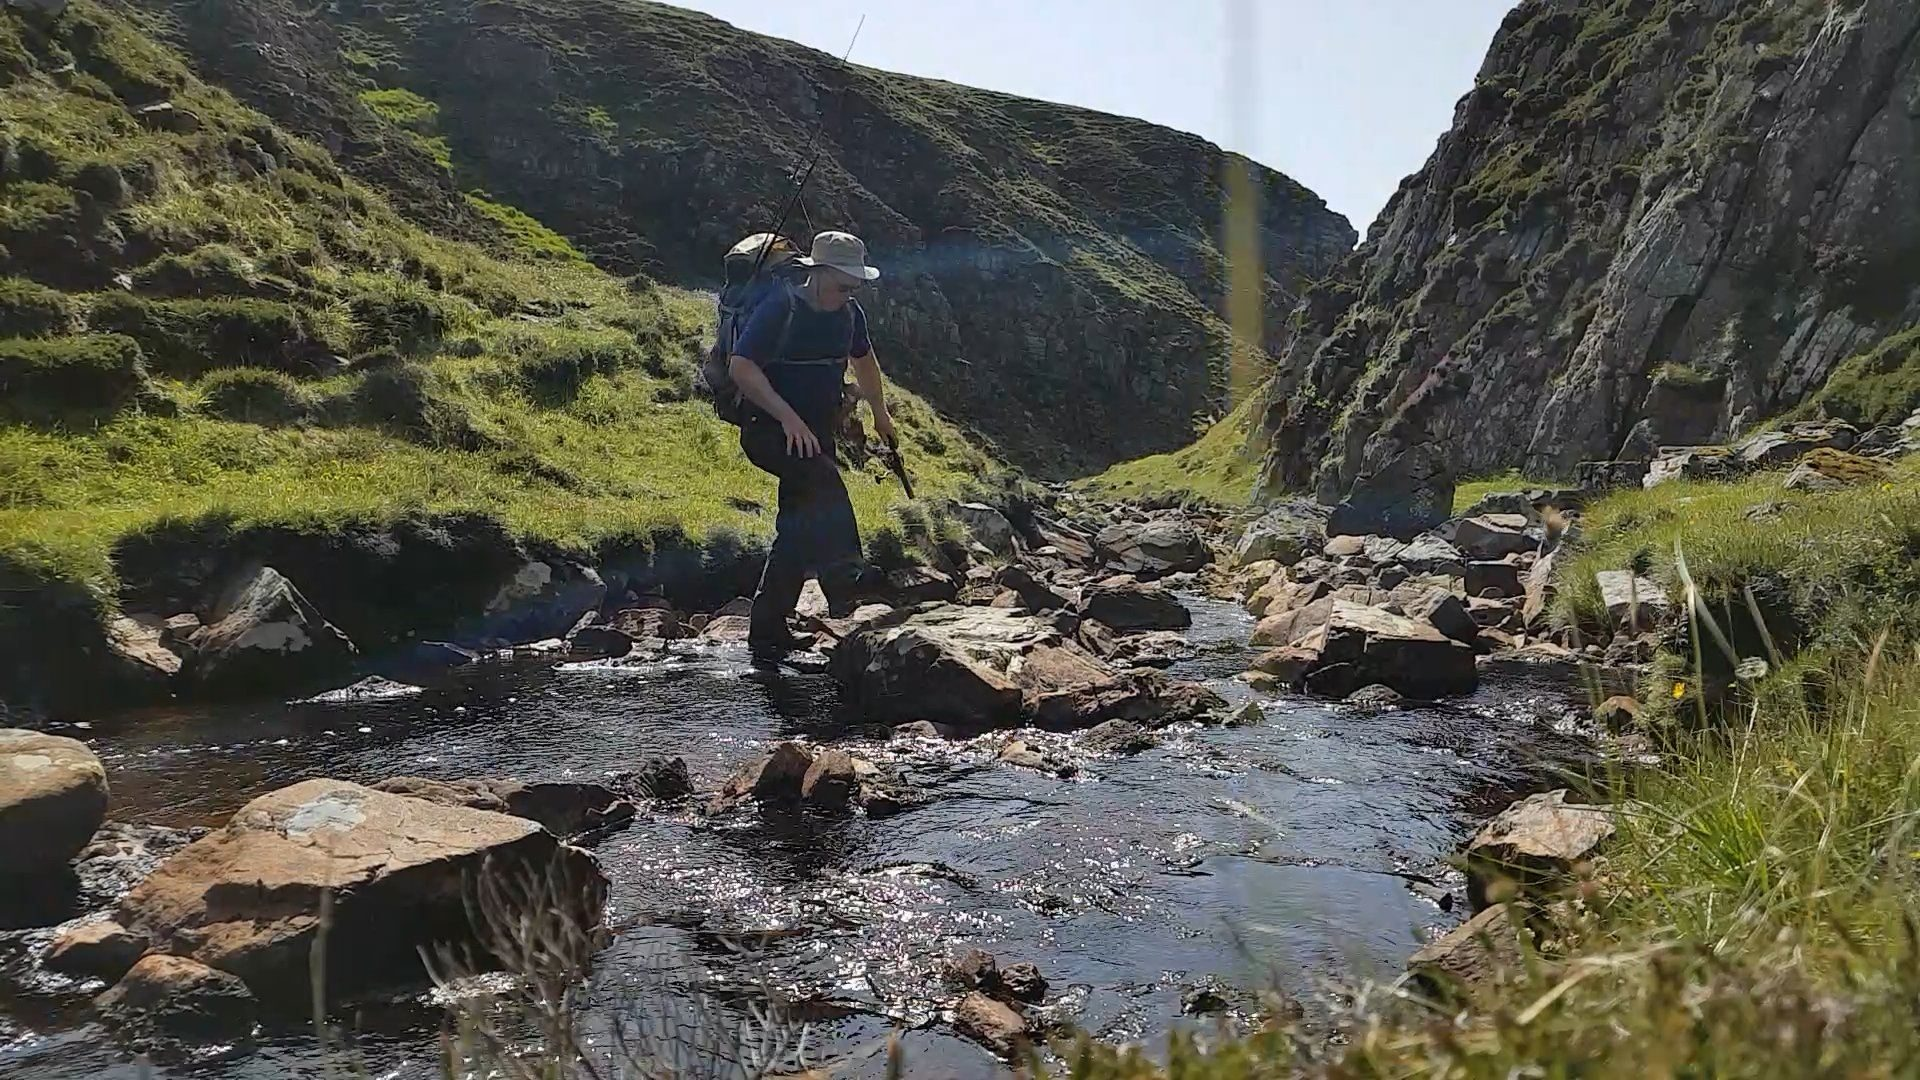 Crossing the small. steep gorge that forms the last obstacle to reaching my campsite for the night. Near Cape Wrath, NW Scotland